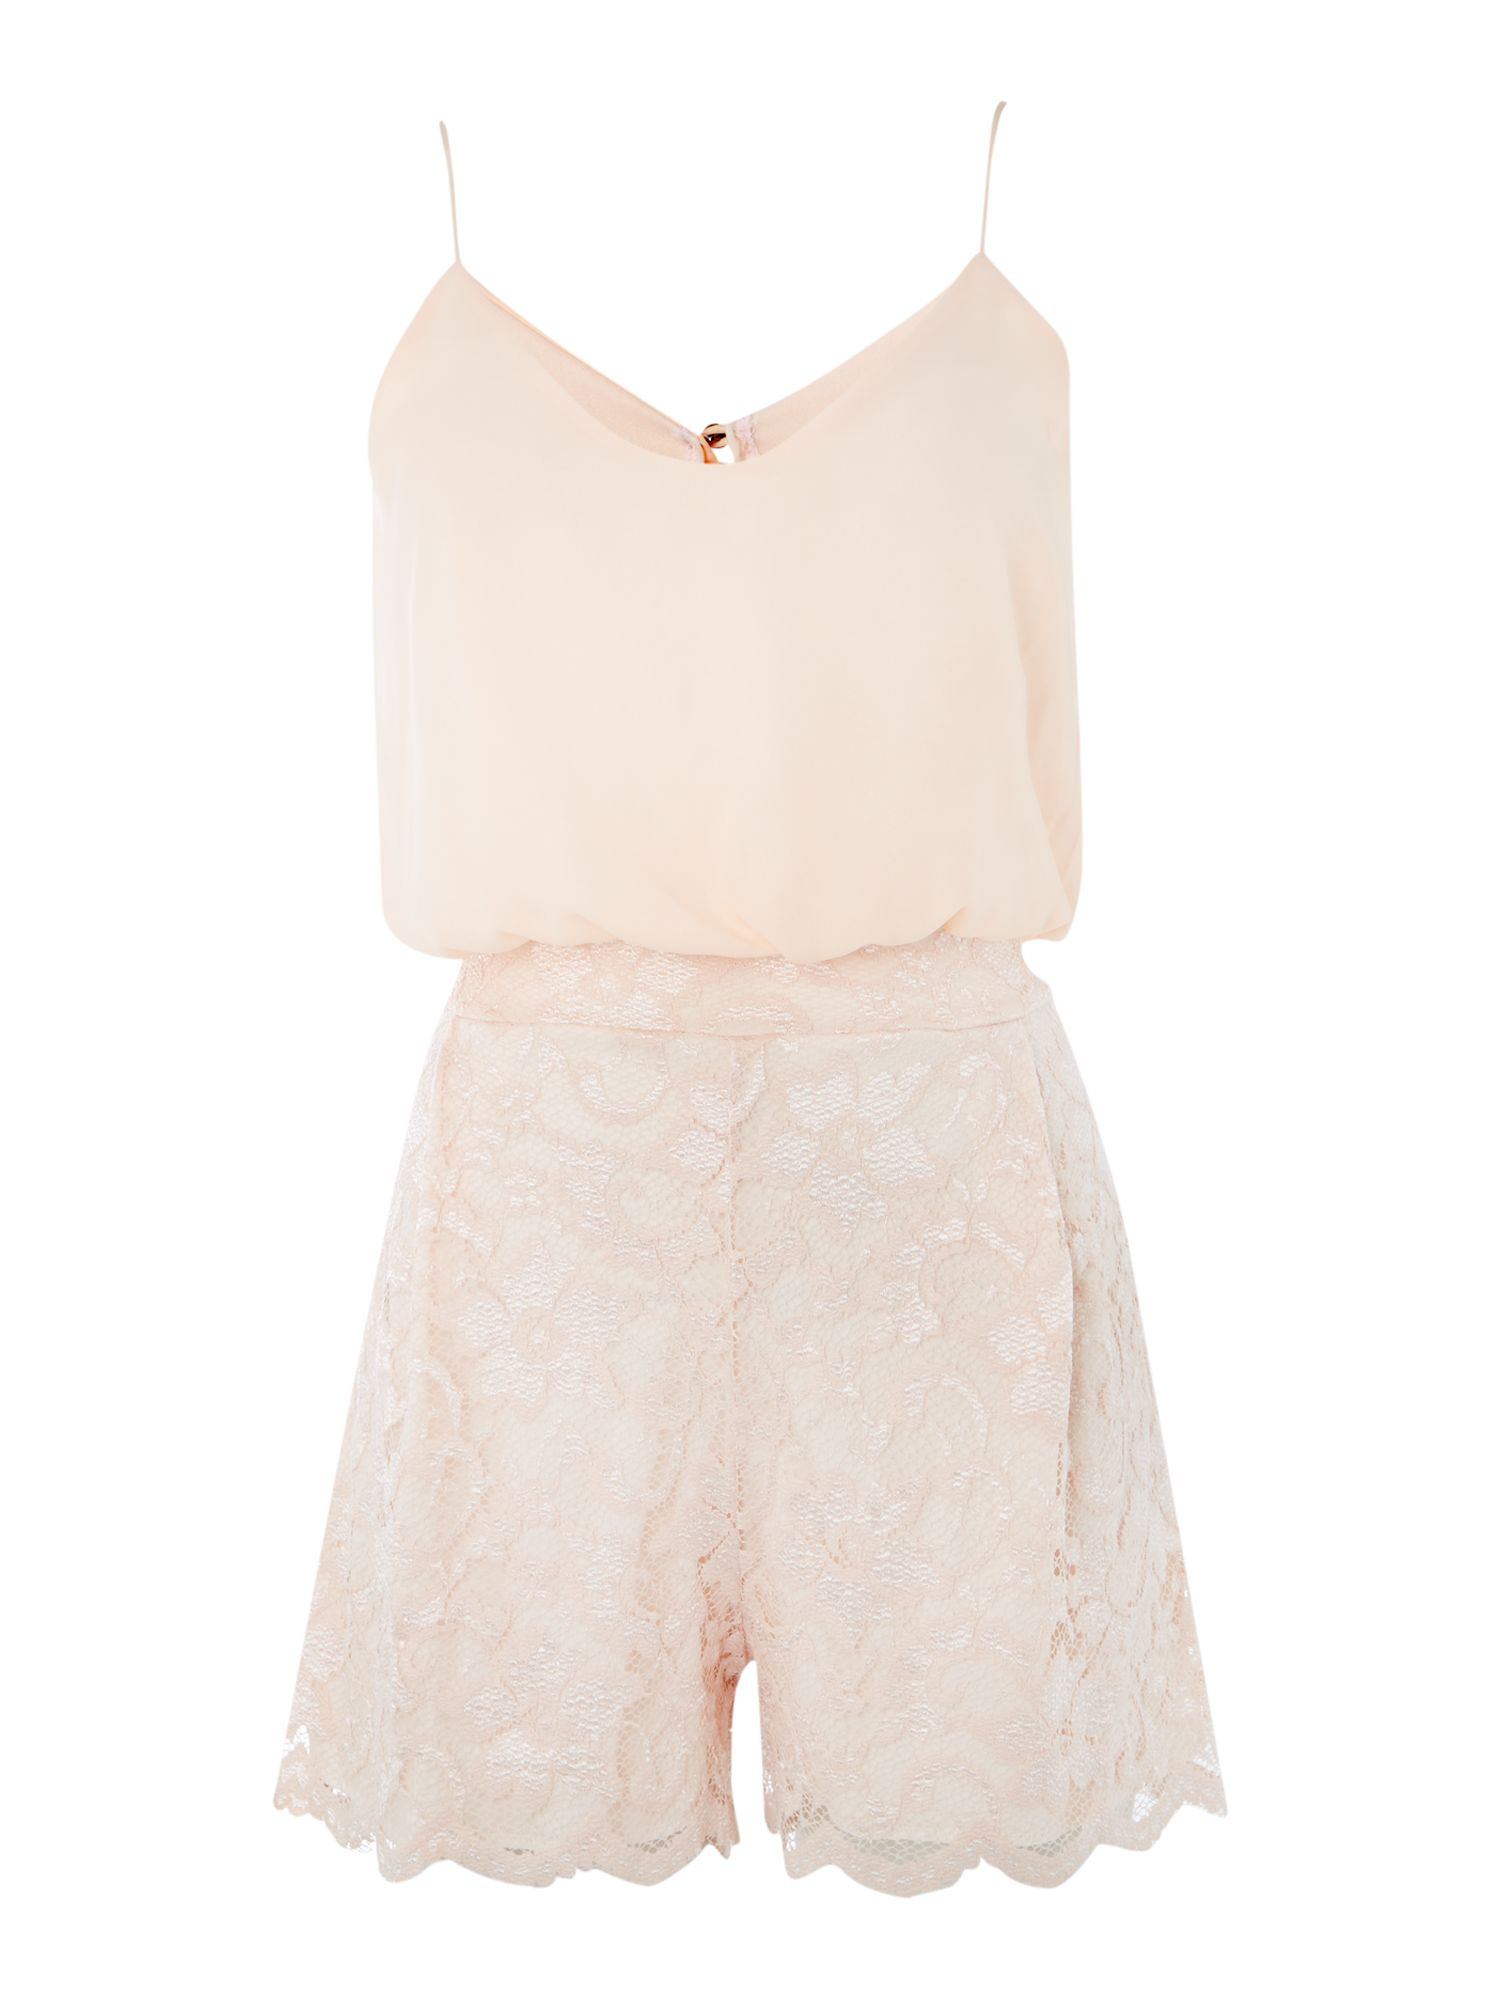 Blouson cami top lace playsuit